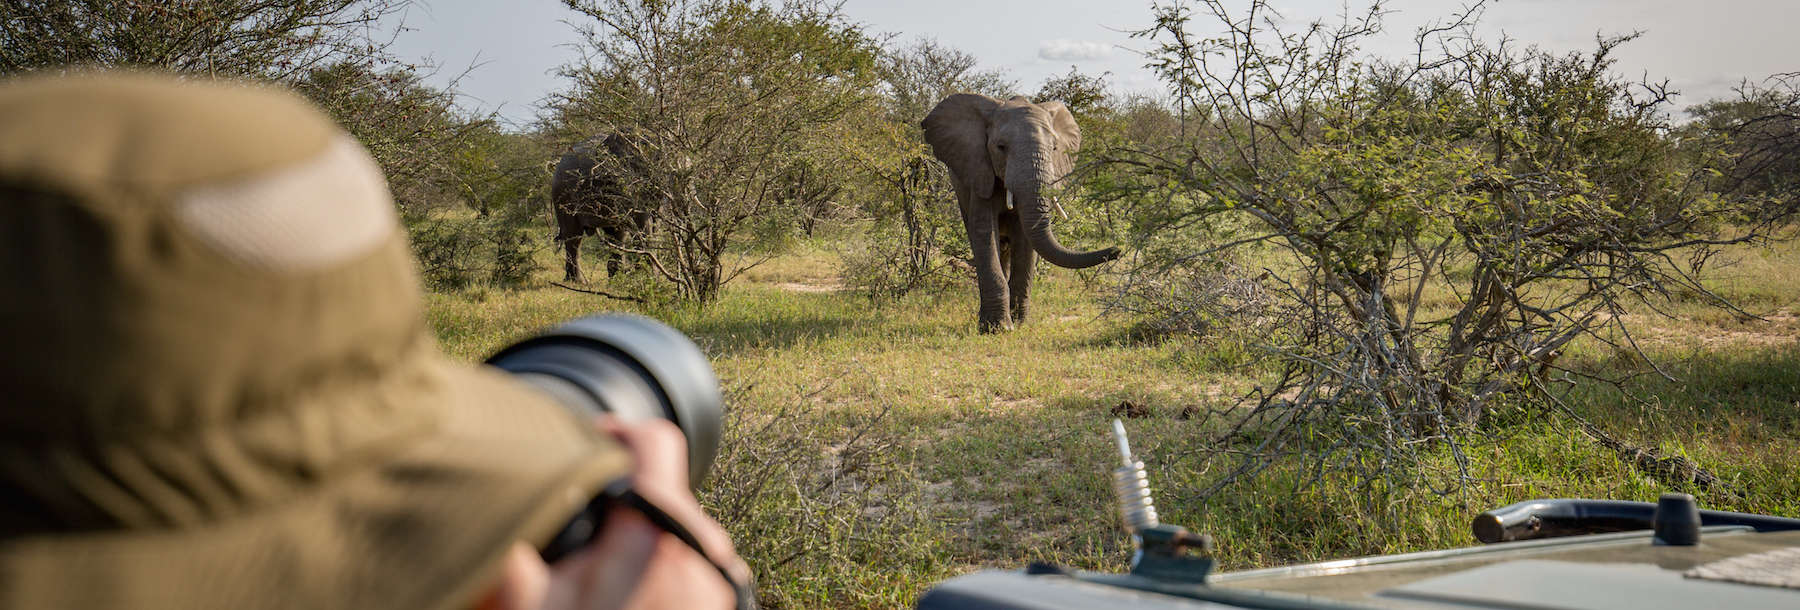 Why doing a wildlife photography internship abroad is a great idea